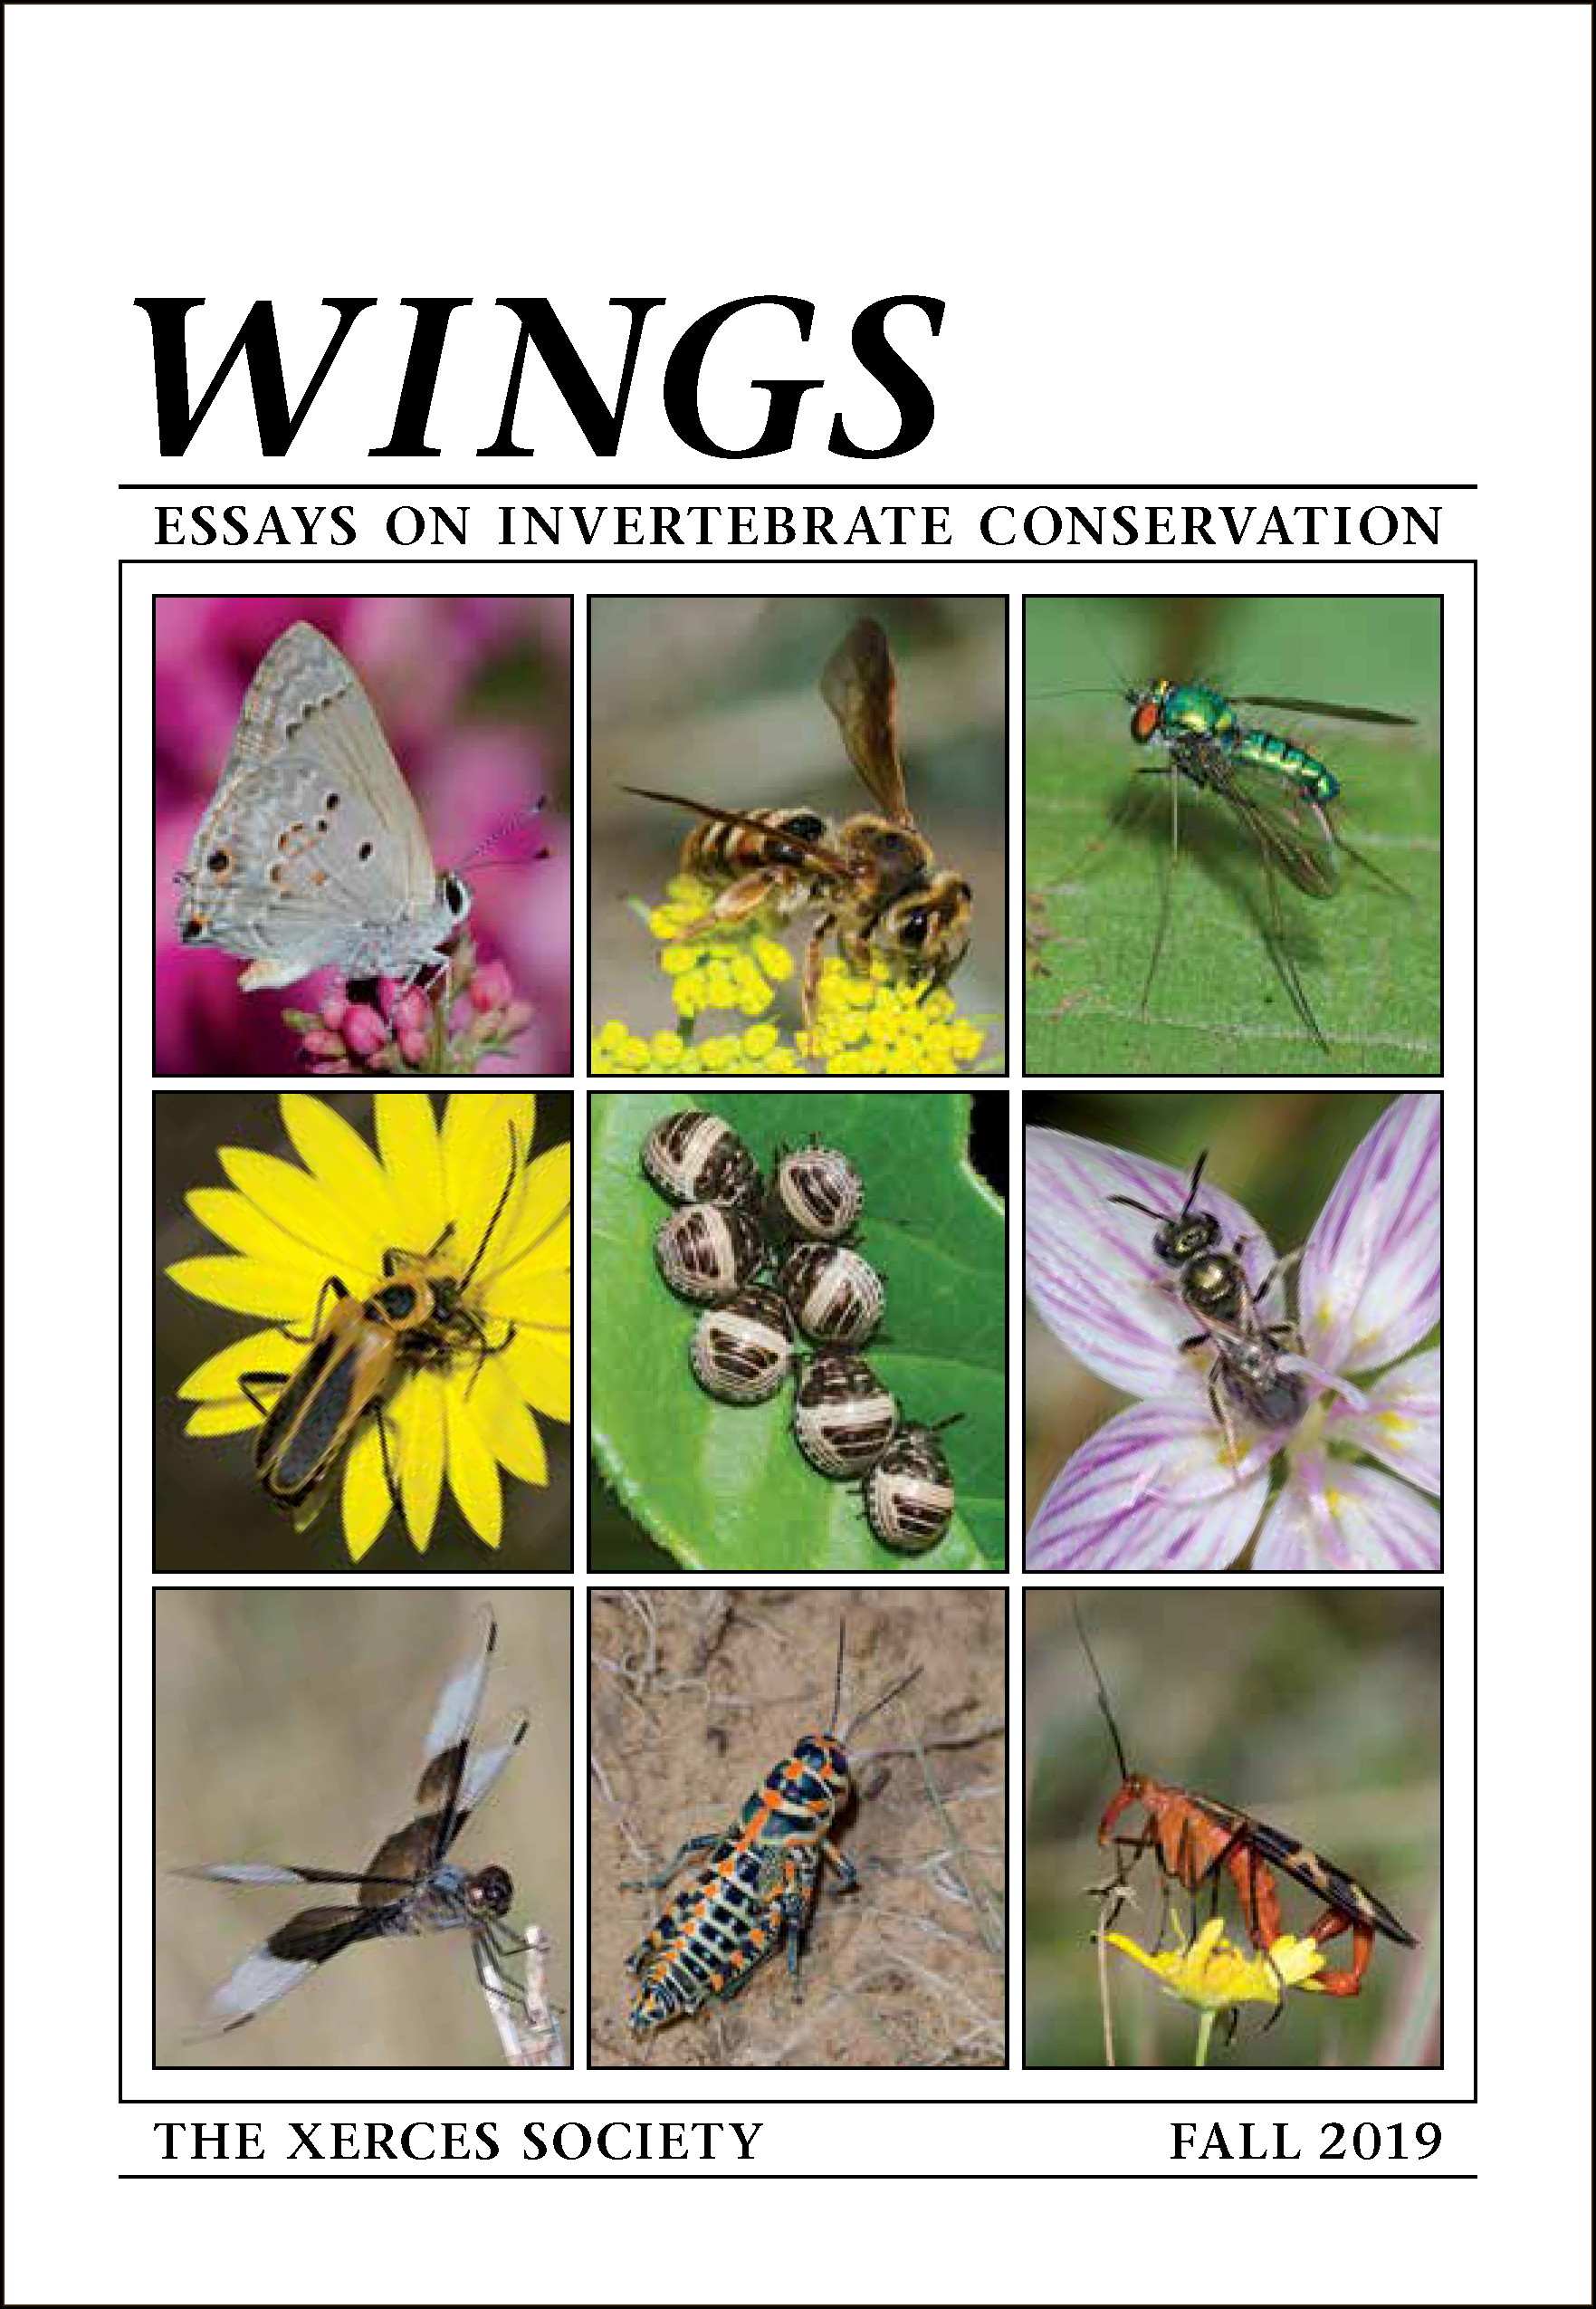 The cover of an edition of Wings is shown. In large text at the top is